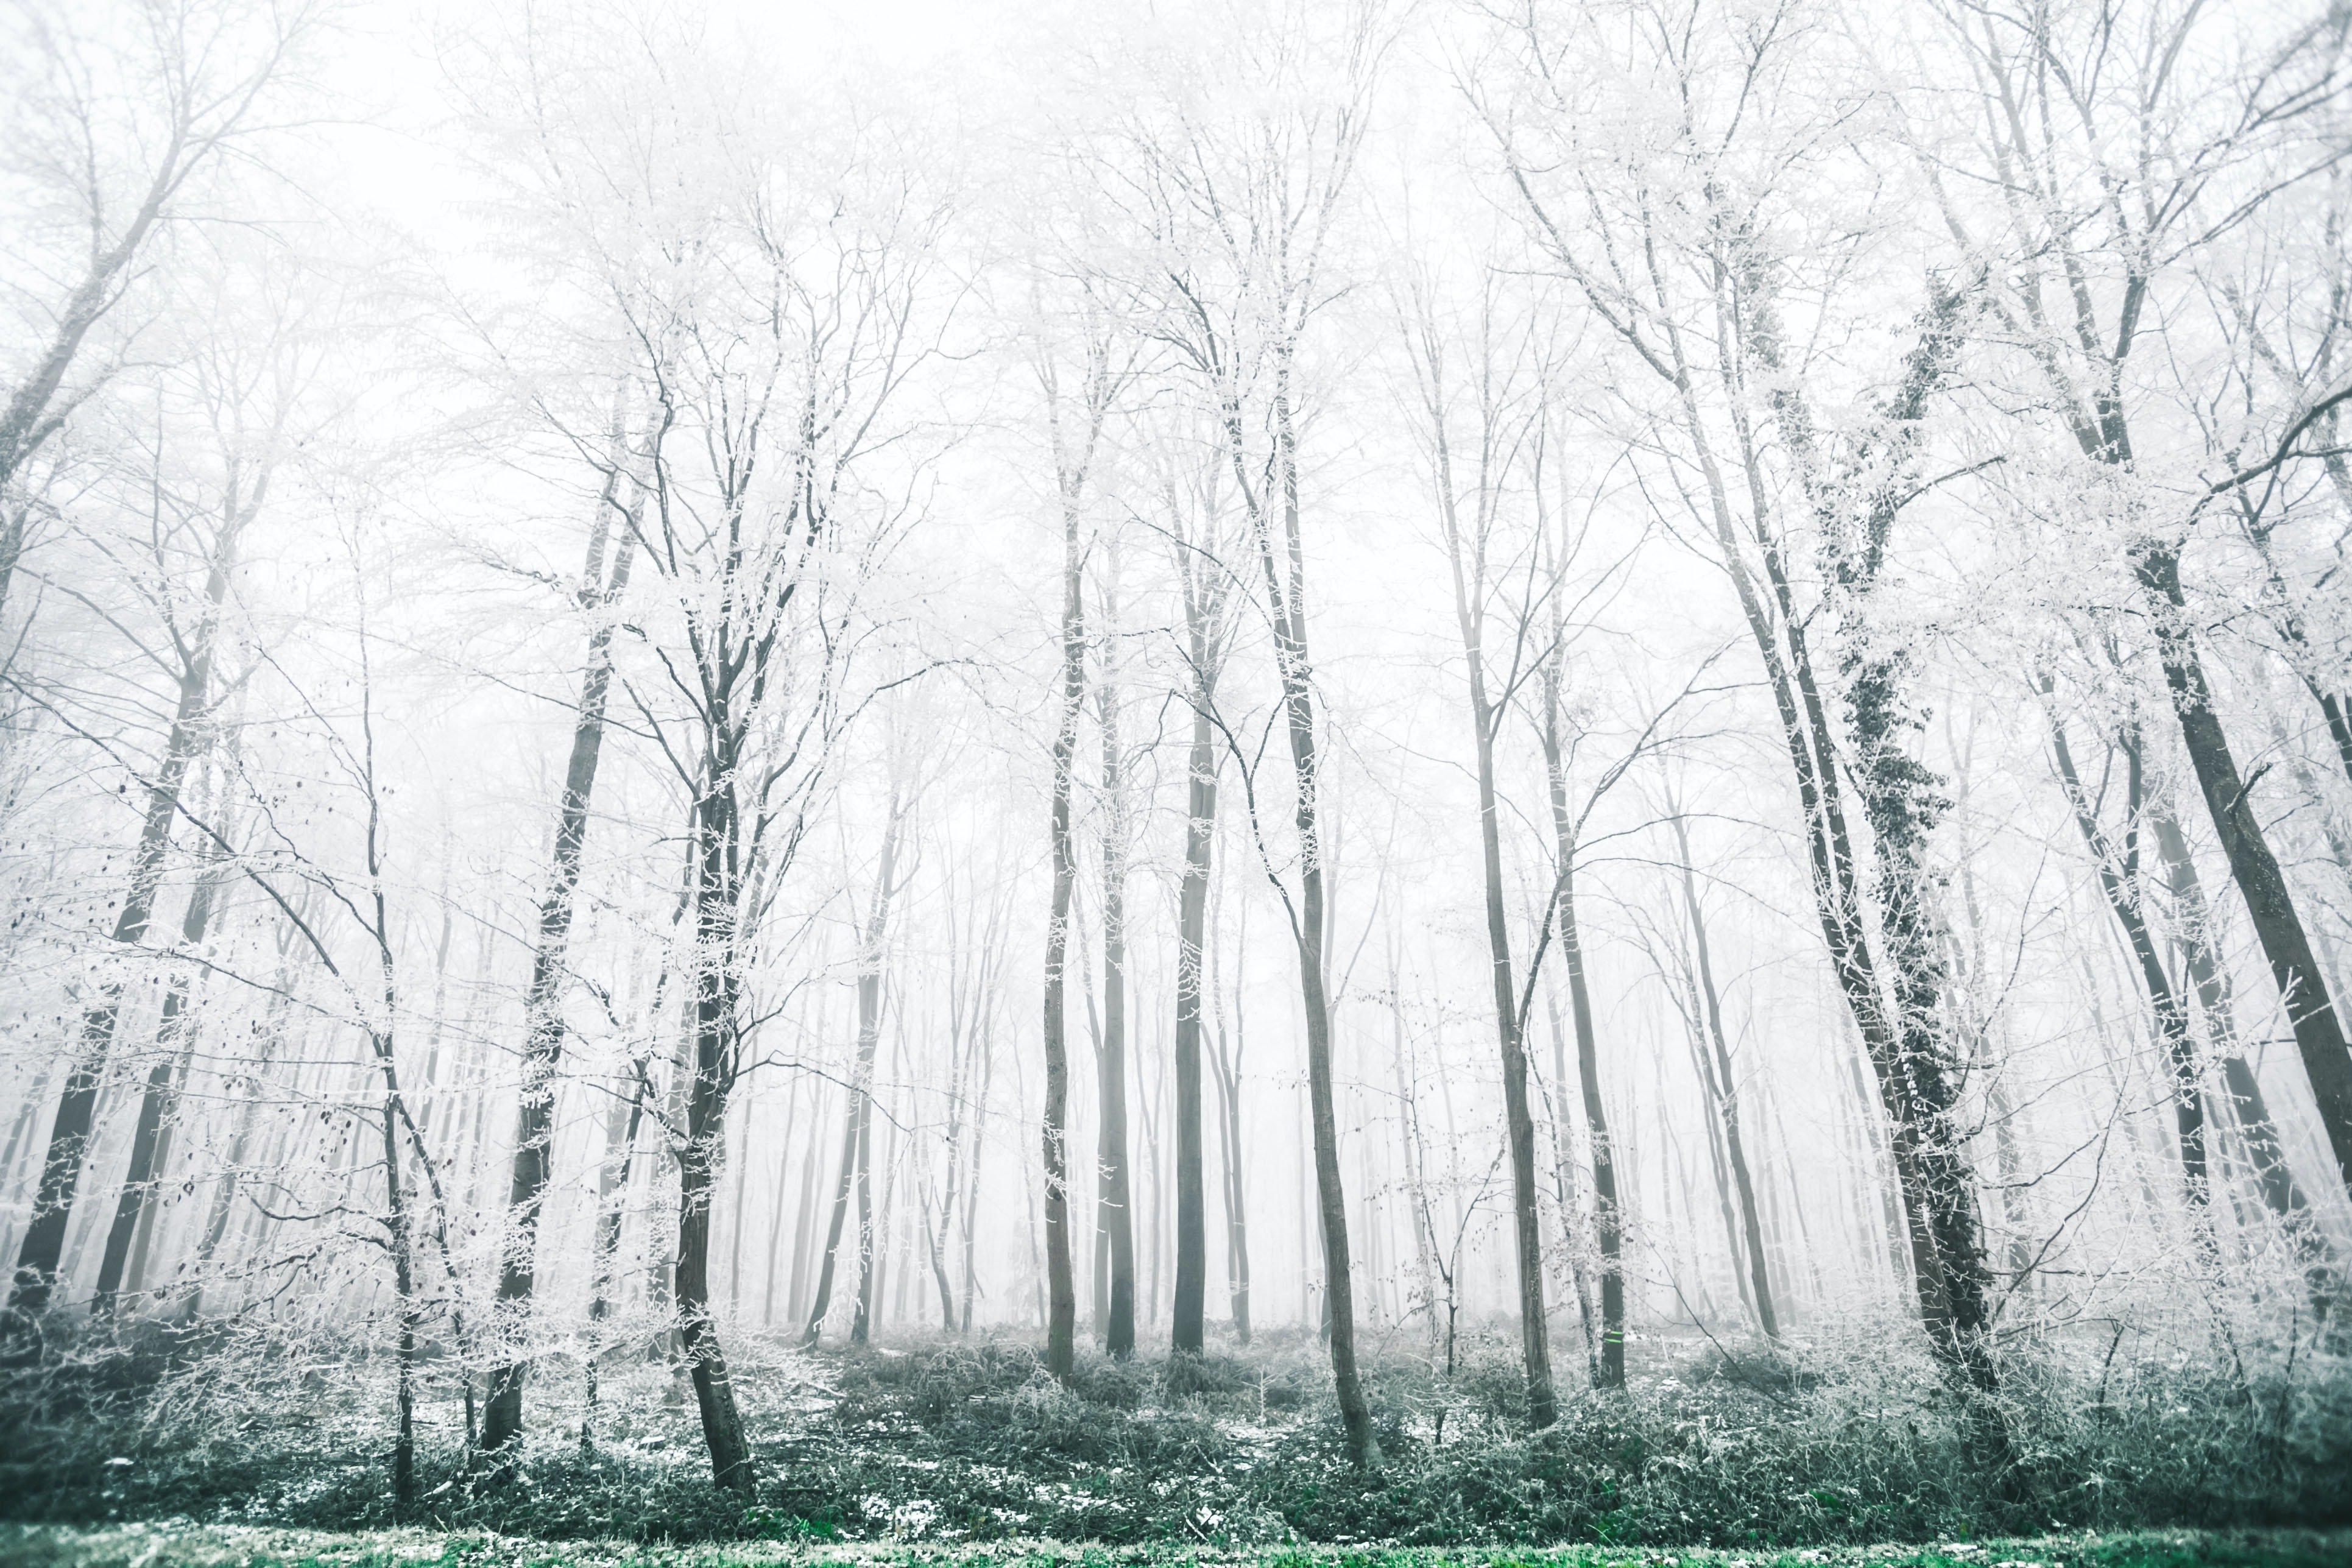 A view of forest trees covered in snow, with white fog throughout the area